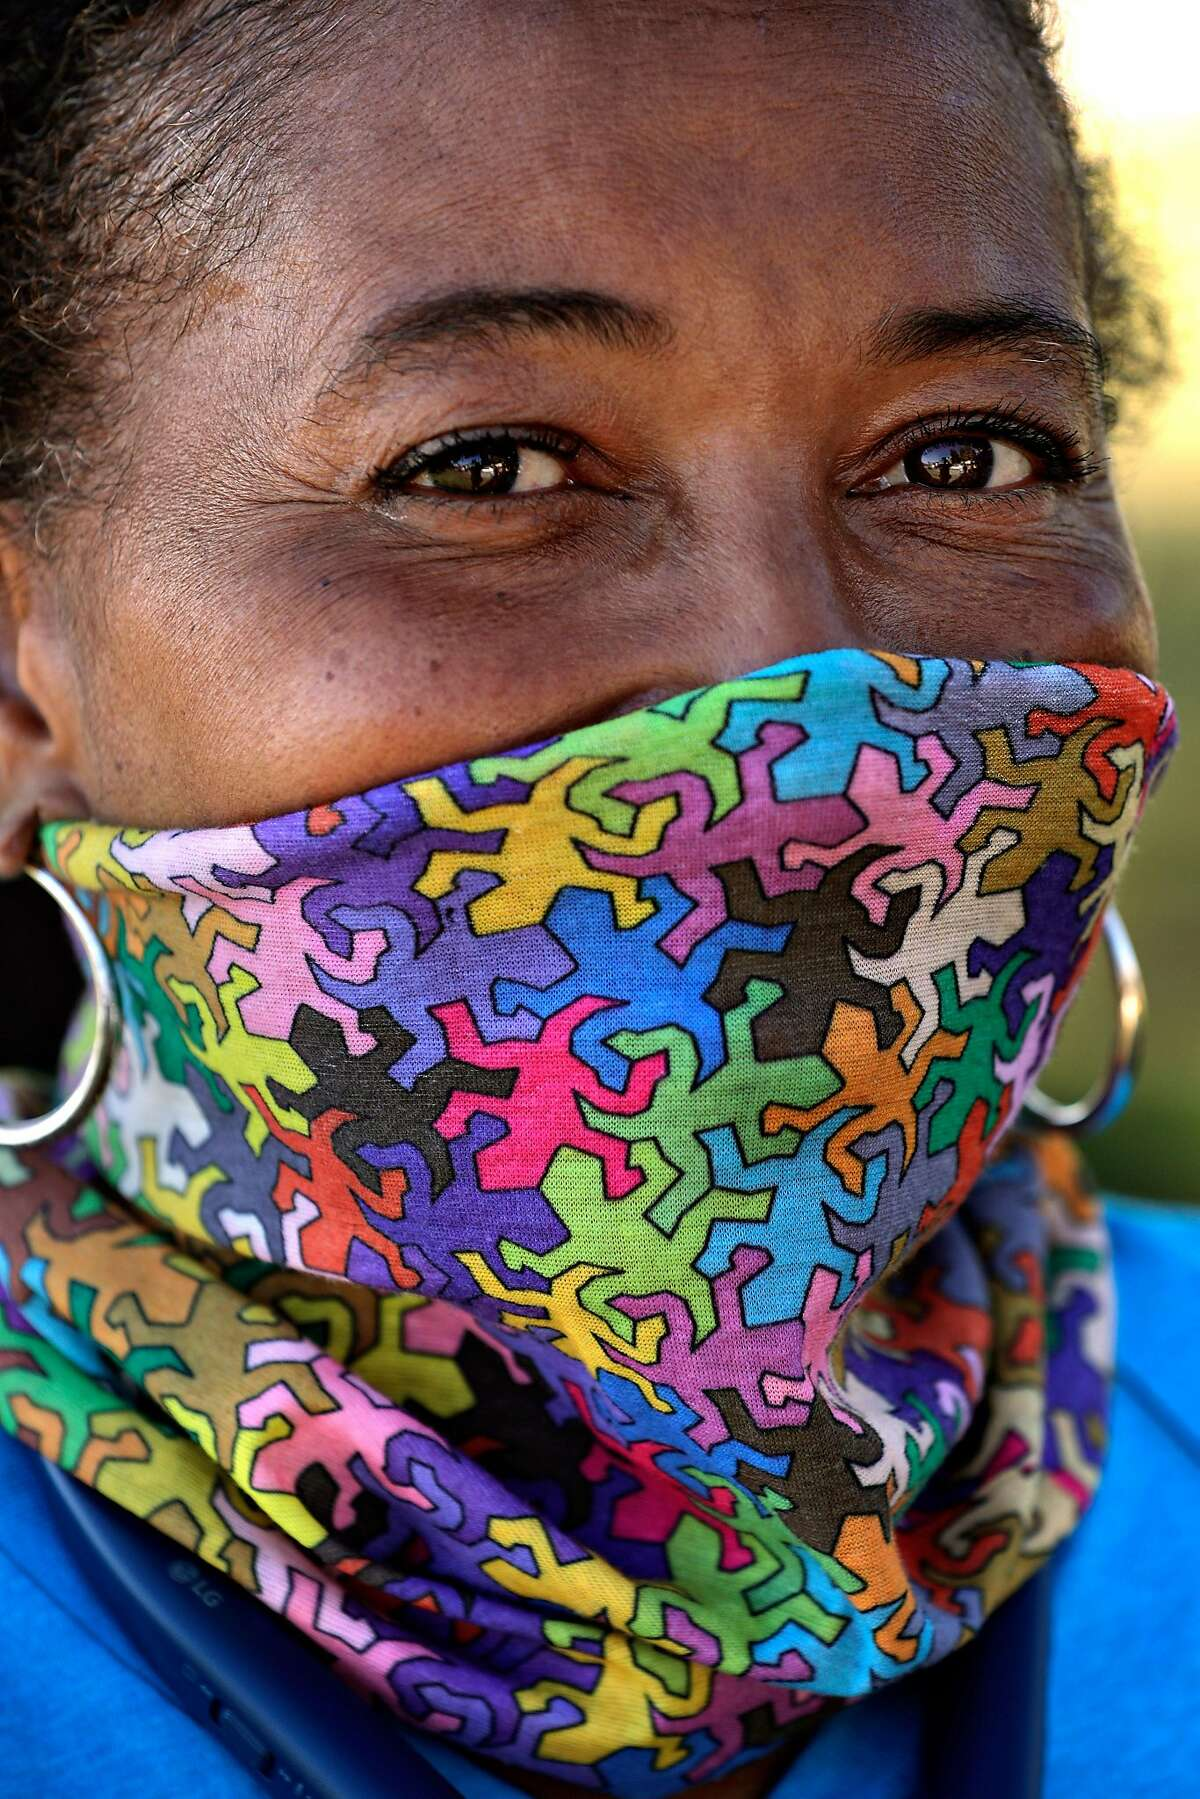 Stacey, no last name given, wearing a cloth mask at Lake Merritt in Oakland, Calif., on Tuesday, June 30, 2020. As more positive test results show a spike in the coronavirus infections, people wanting to get outside are wearing masks to prevent the spread of the disease.